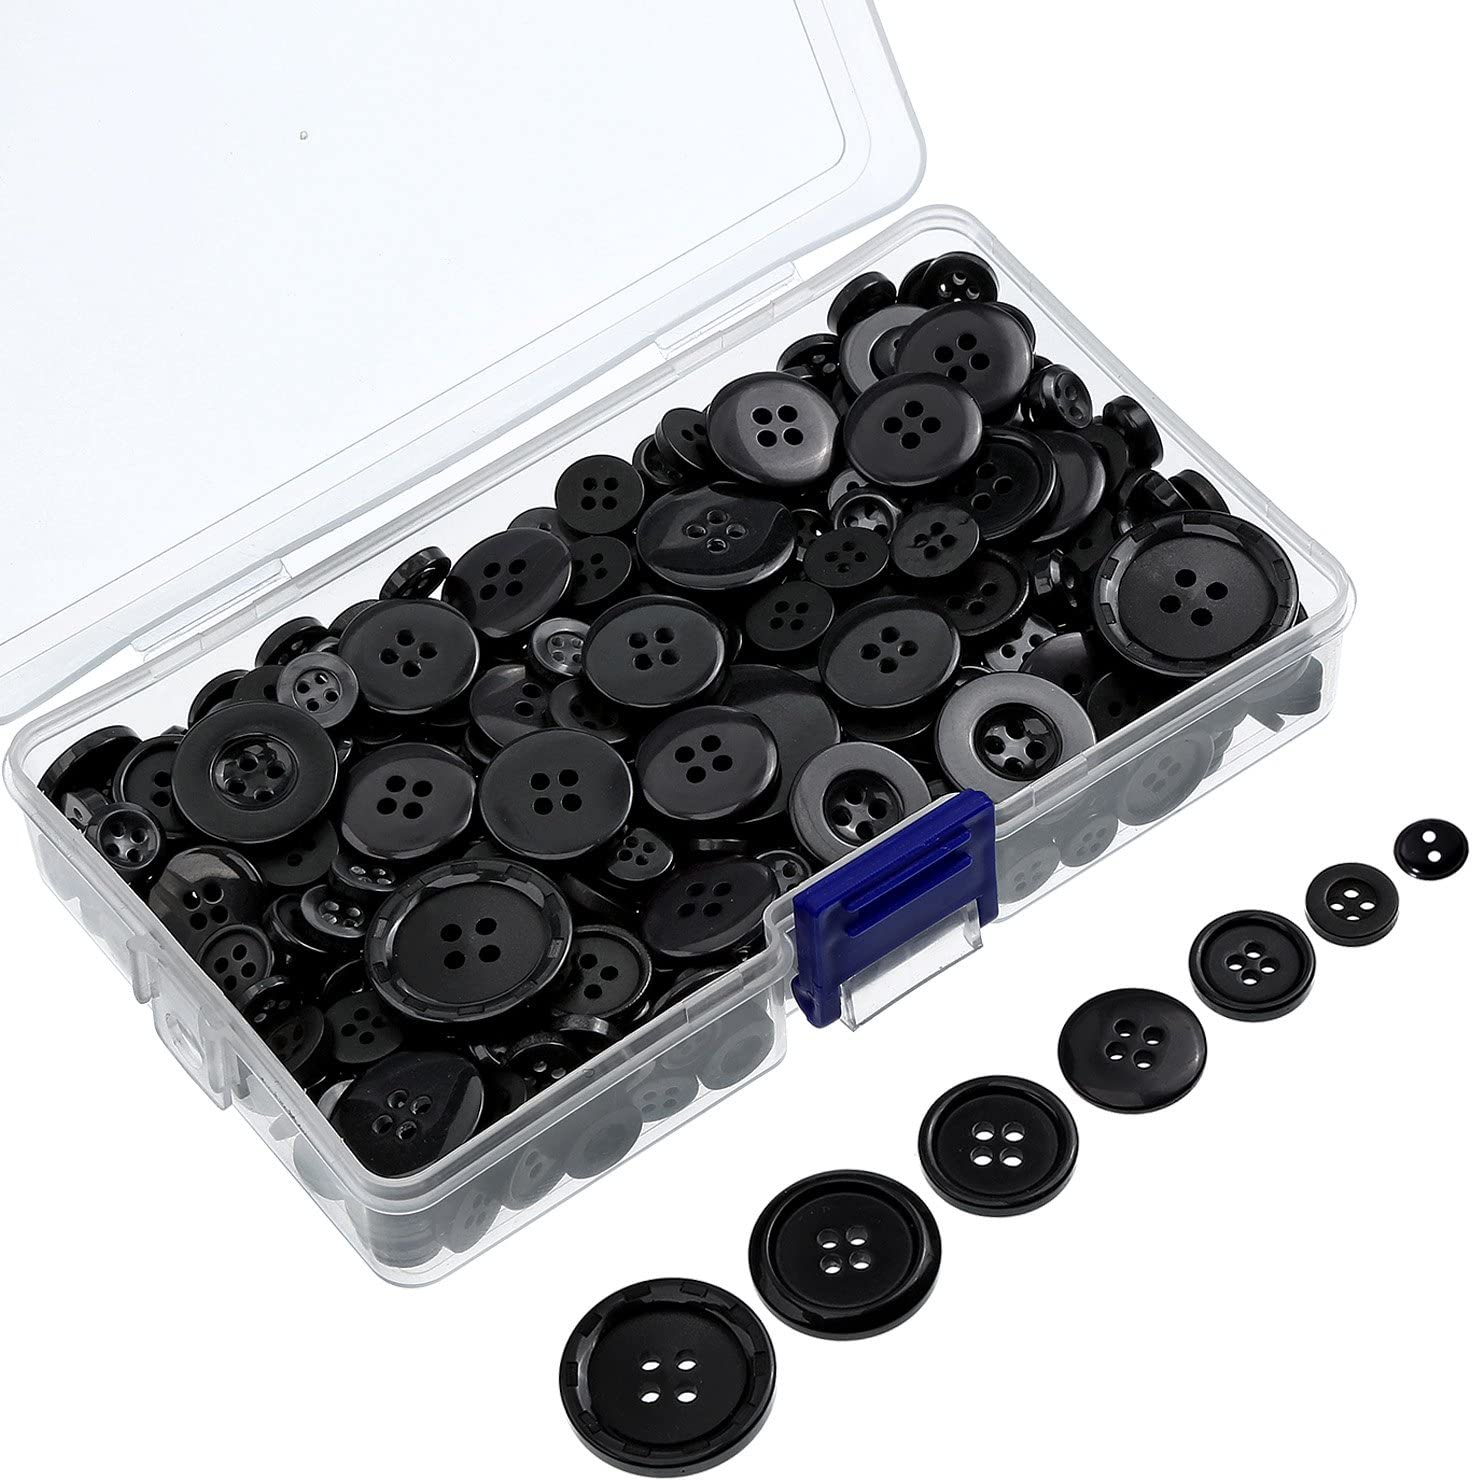 Bememo 400 Pieces Buttons Round Resin Button Sewing Craft Buttons with Storage Box for Valentine's Day, 2 and 4 Holes, Assorted Sizes (Black)